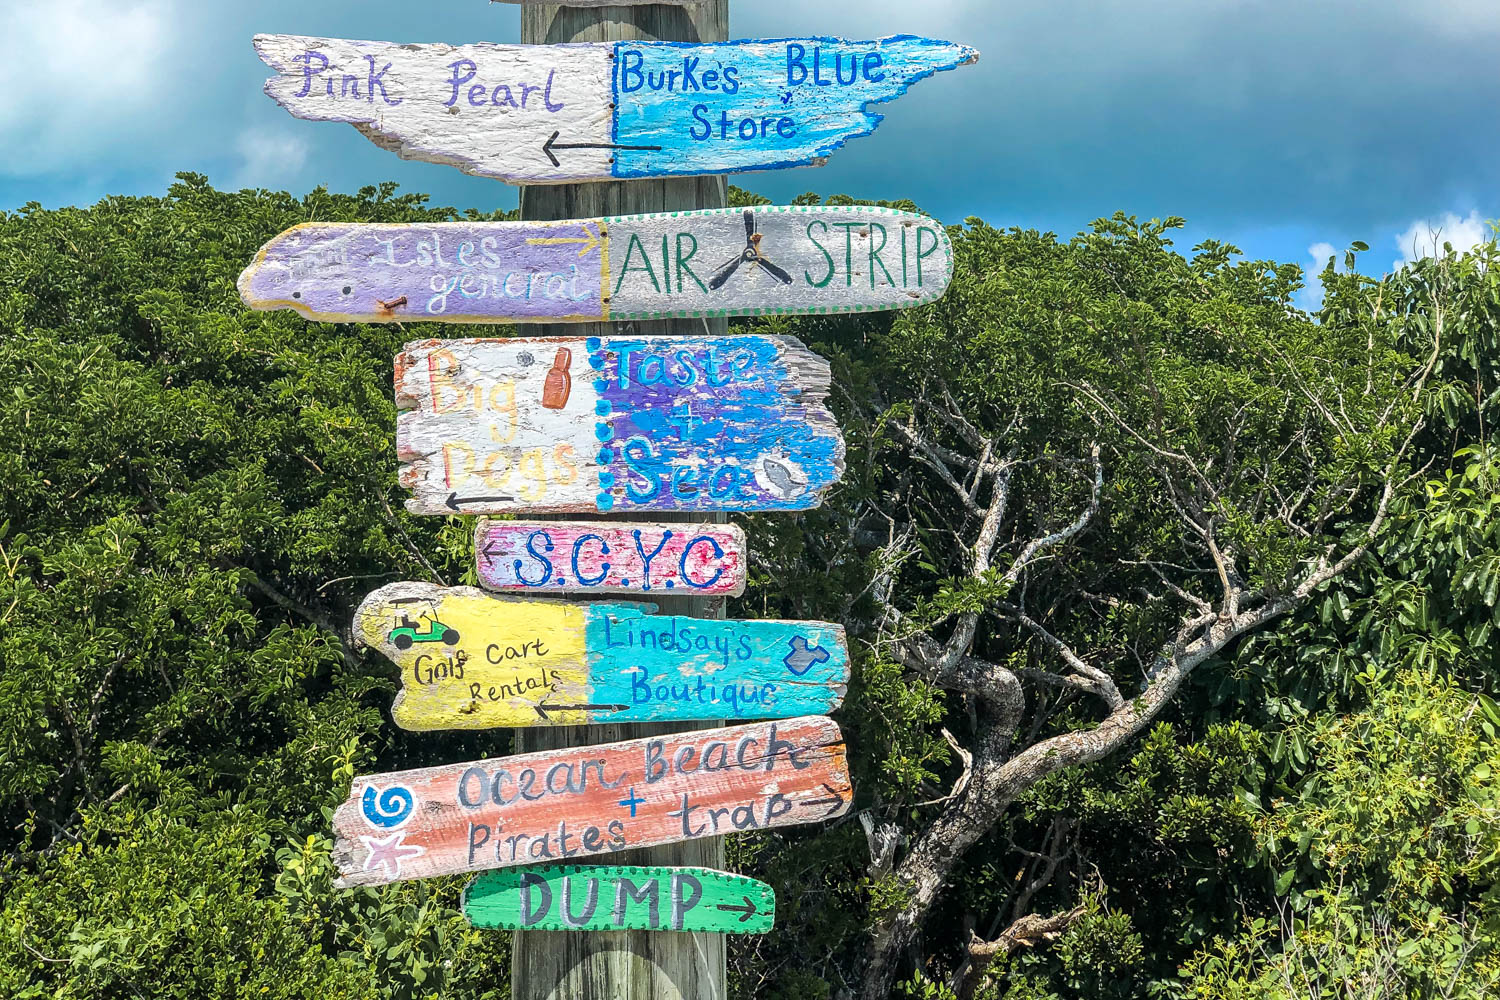 Staniel Cay Bahamas signpost is one of the cute things to see on Staniel Cay Exuma. Staniel Cay is one of the top places to visit in the Bahamas